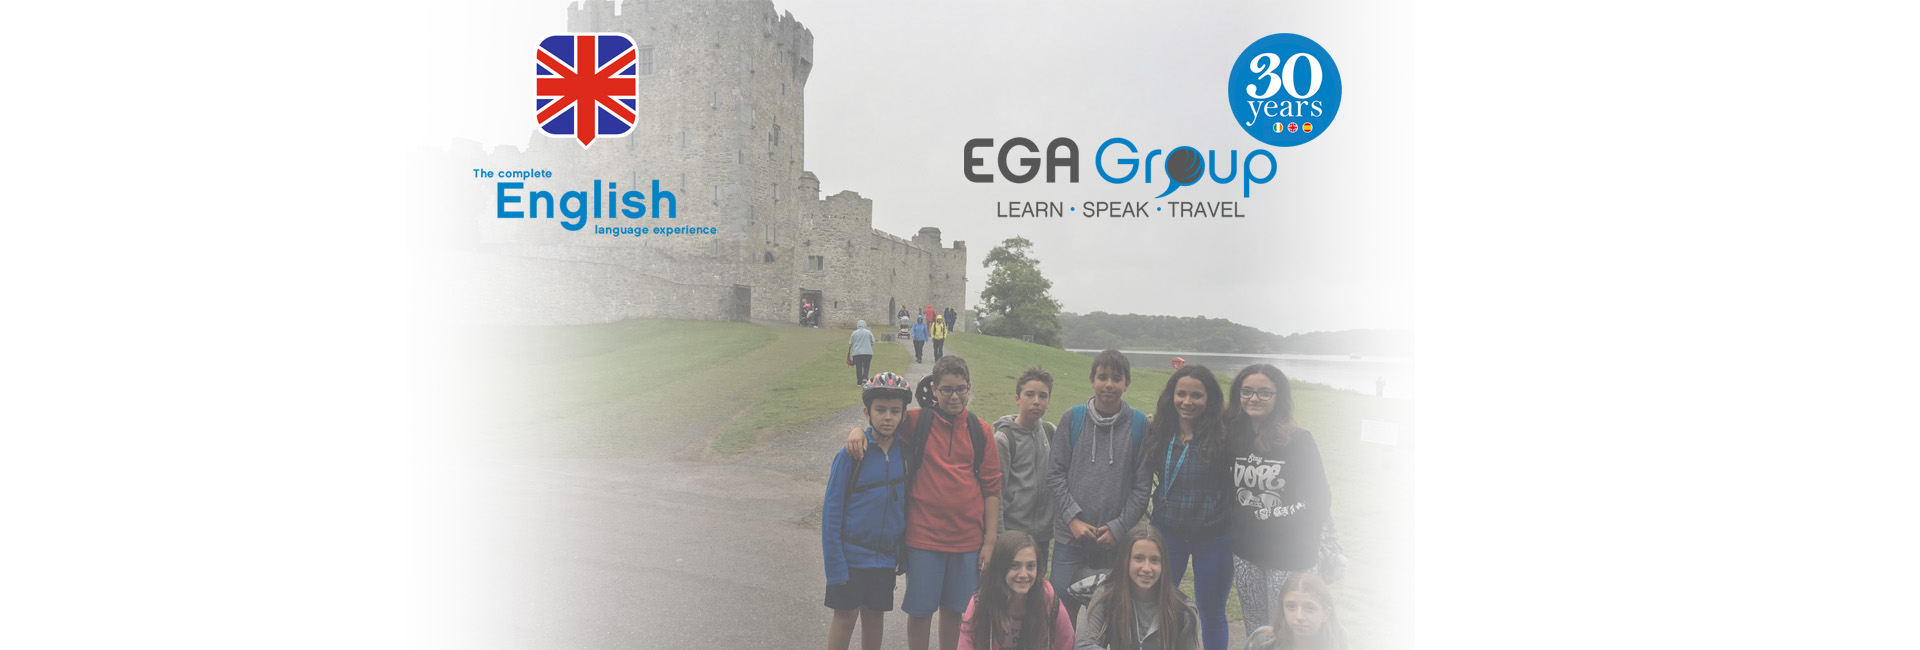 EGA Group | The Complete English Language Experience